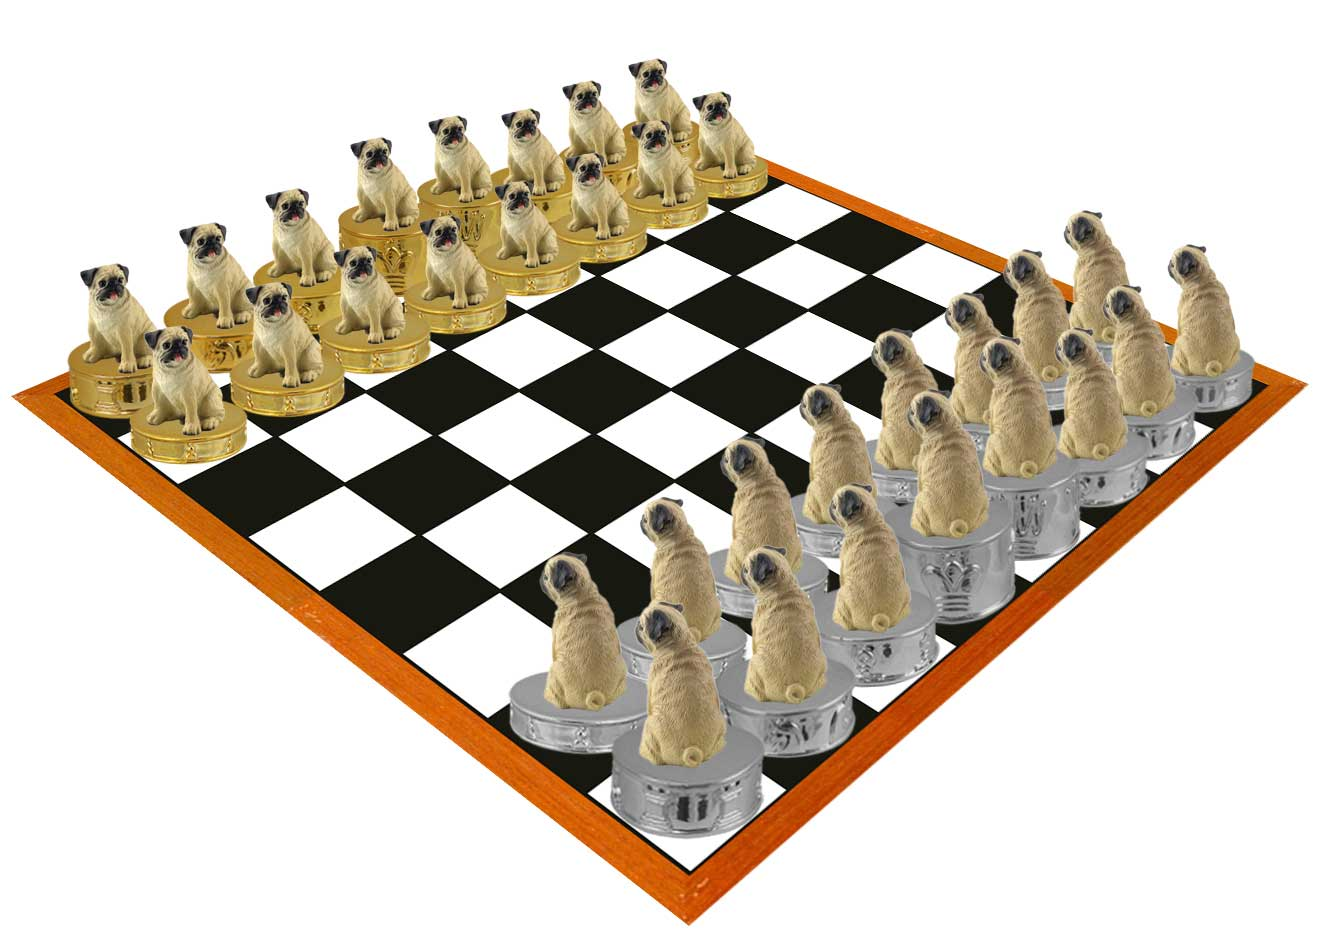 ... Stoppers Candle Accessories Chess Sets Christmas Ornaments Comical  Characters Desk Accessories Figurines Greeting Cards/Paper Products Jewelry  Magnets ...